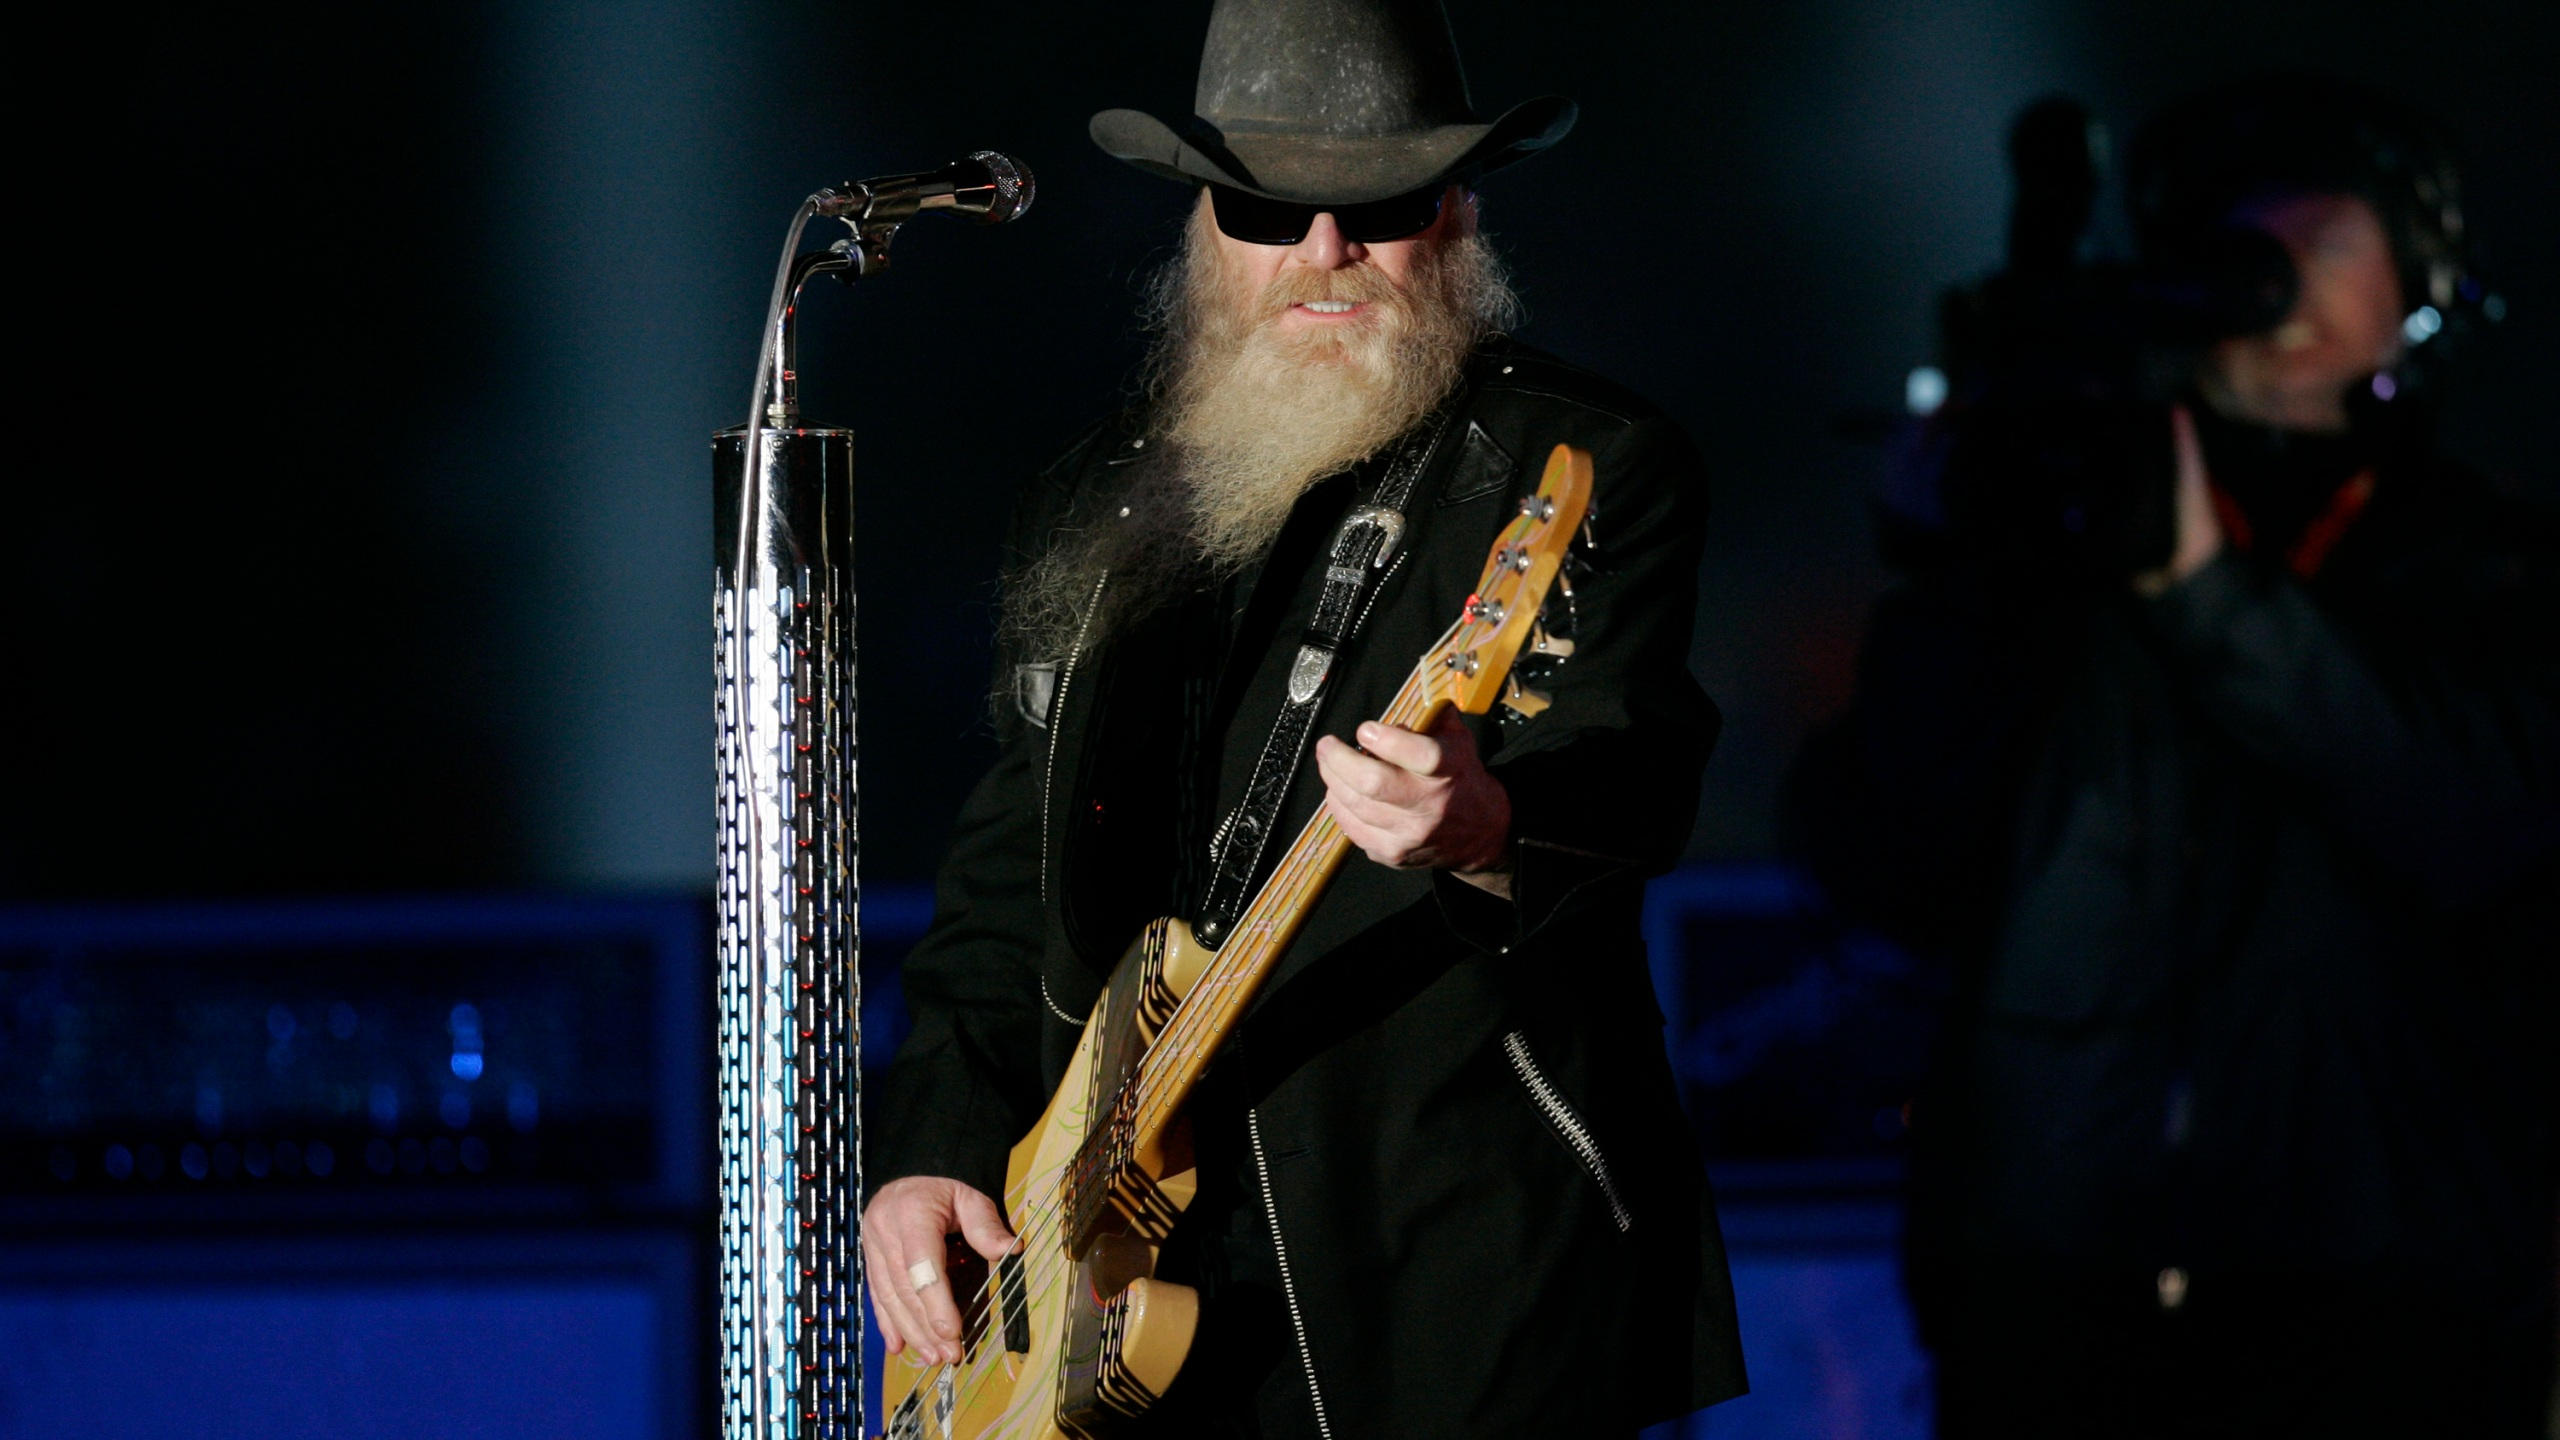 ZZ Tops' Dusty Hill performs at half time ceremonies in Orange Bowl events